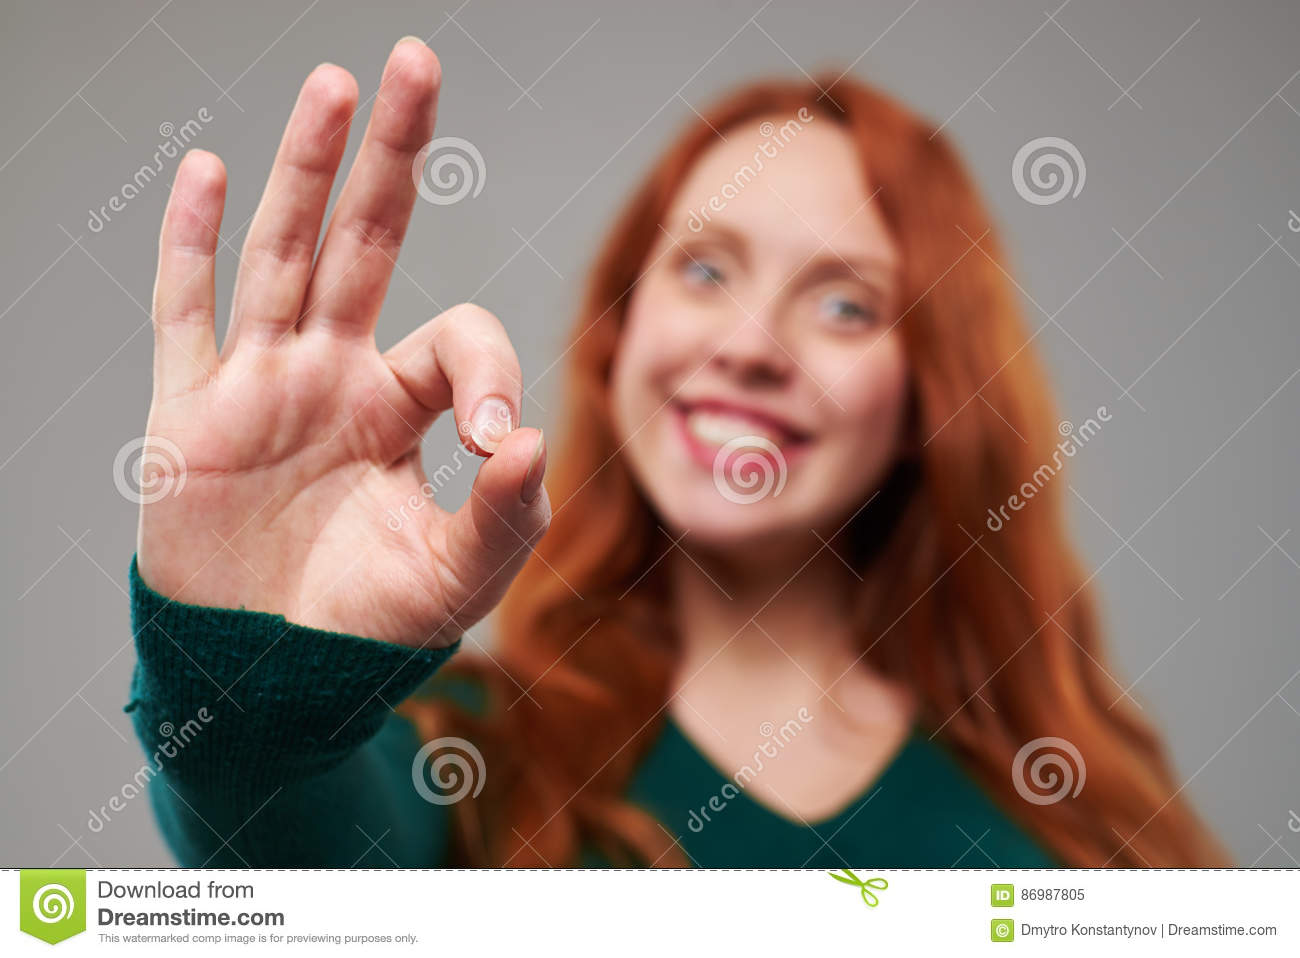 Focus on a gesture of success given by redhead woman